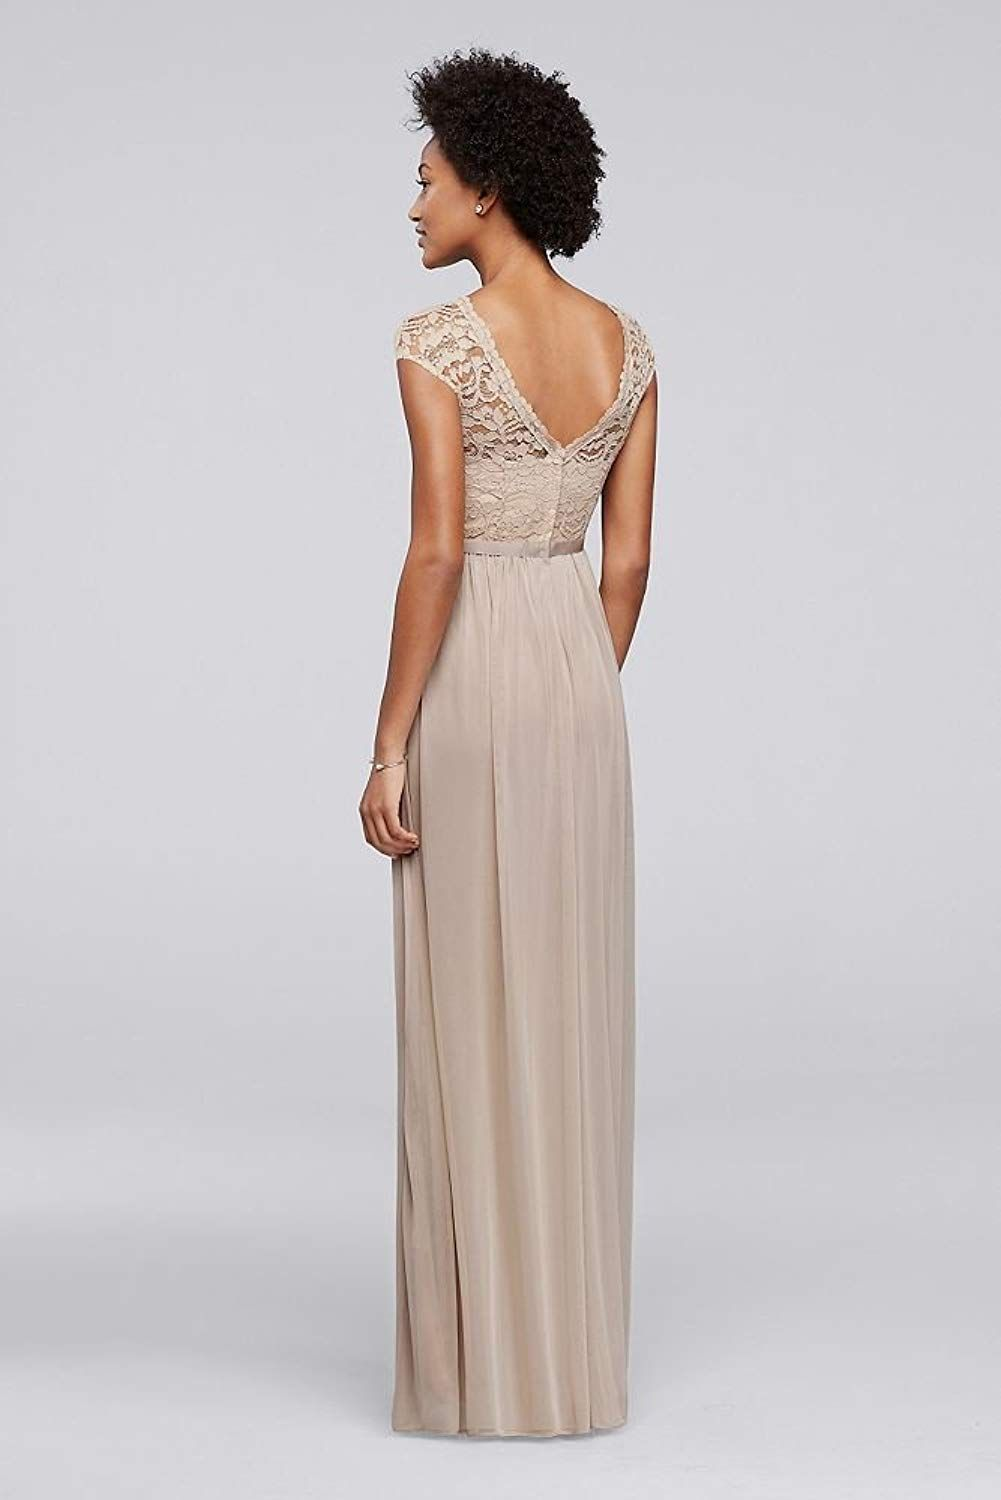 Davidus bridal long bridesmaid dress with lace bodice style f